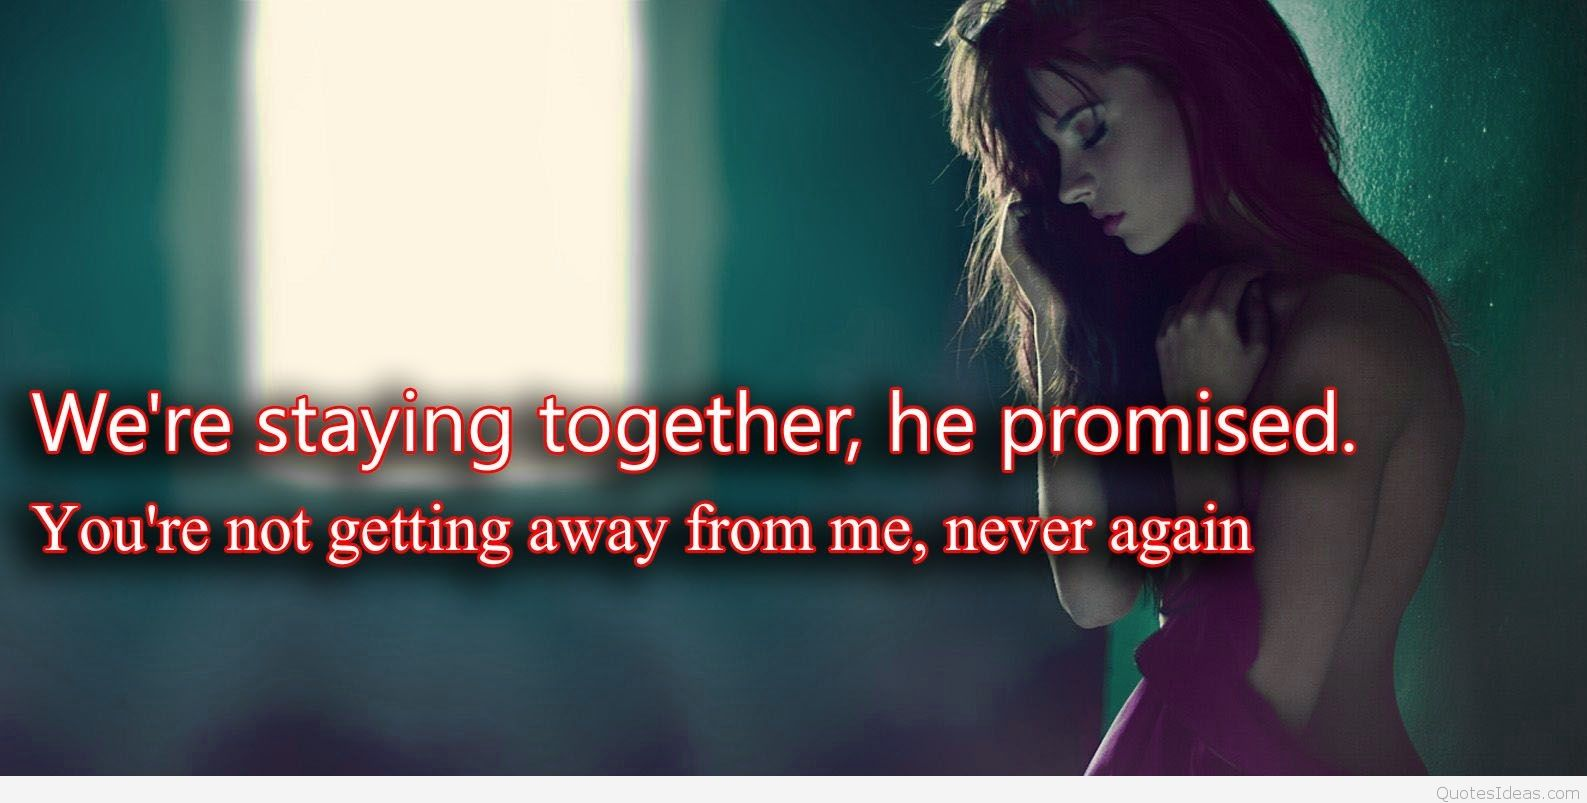 Sad Love Quote For Girls - HD Wallpaper